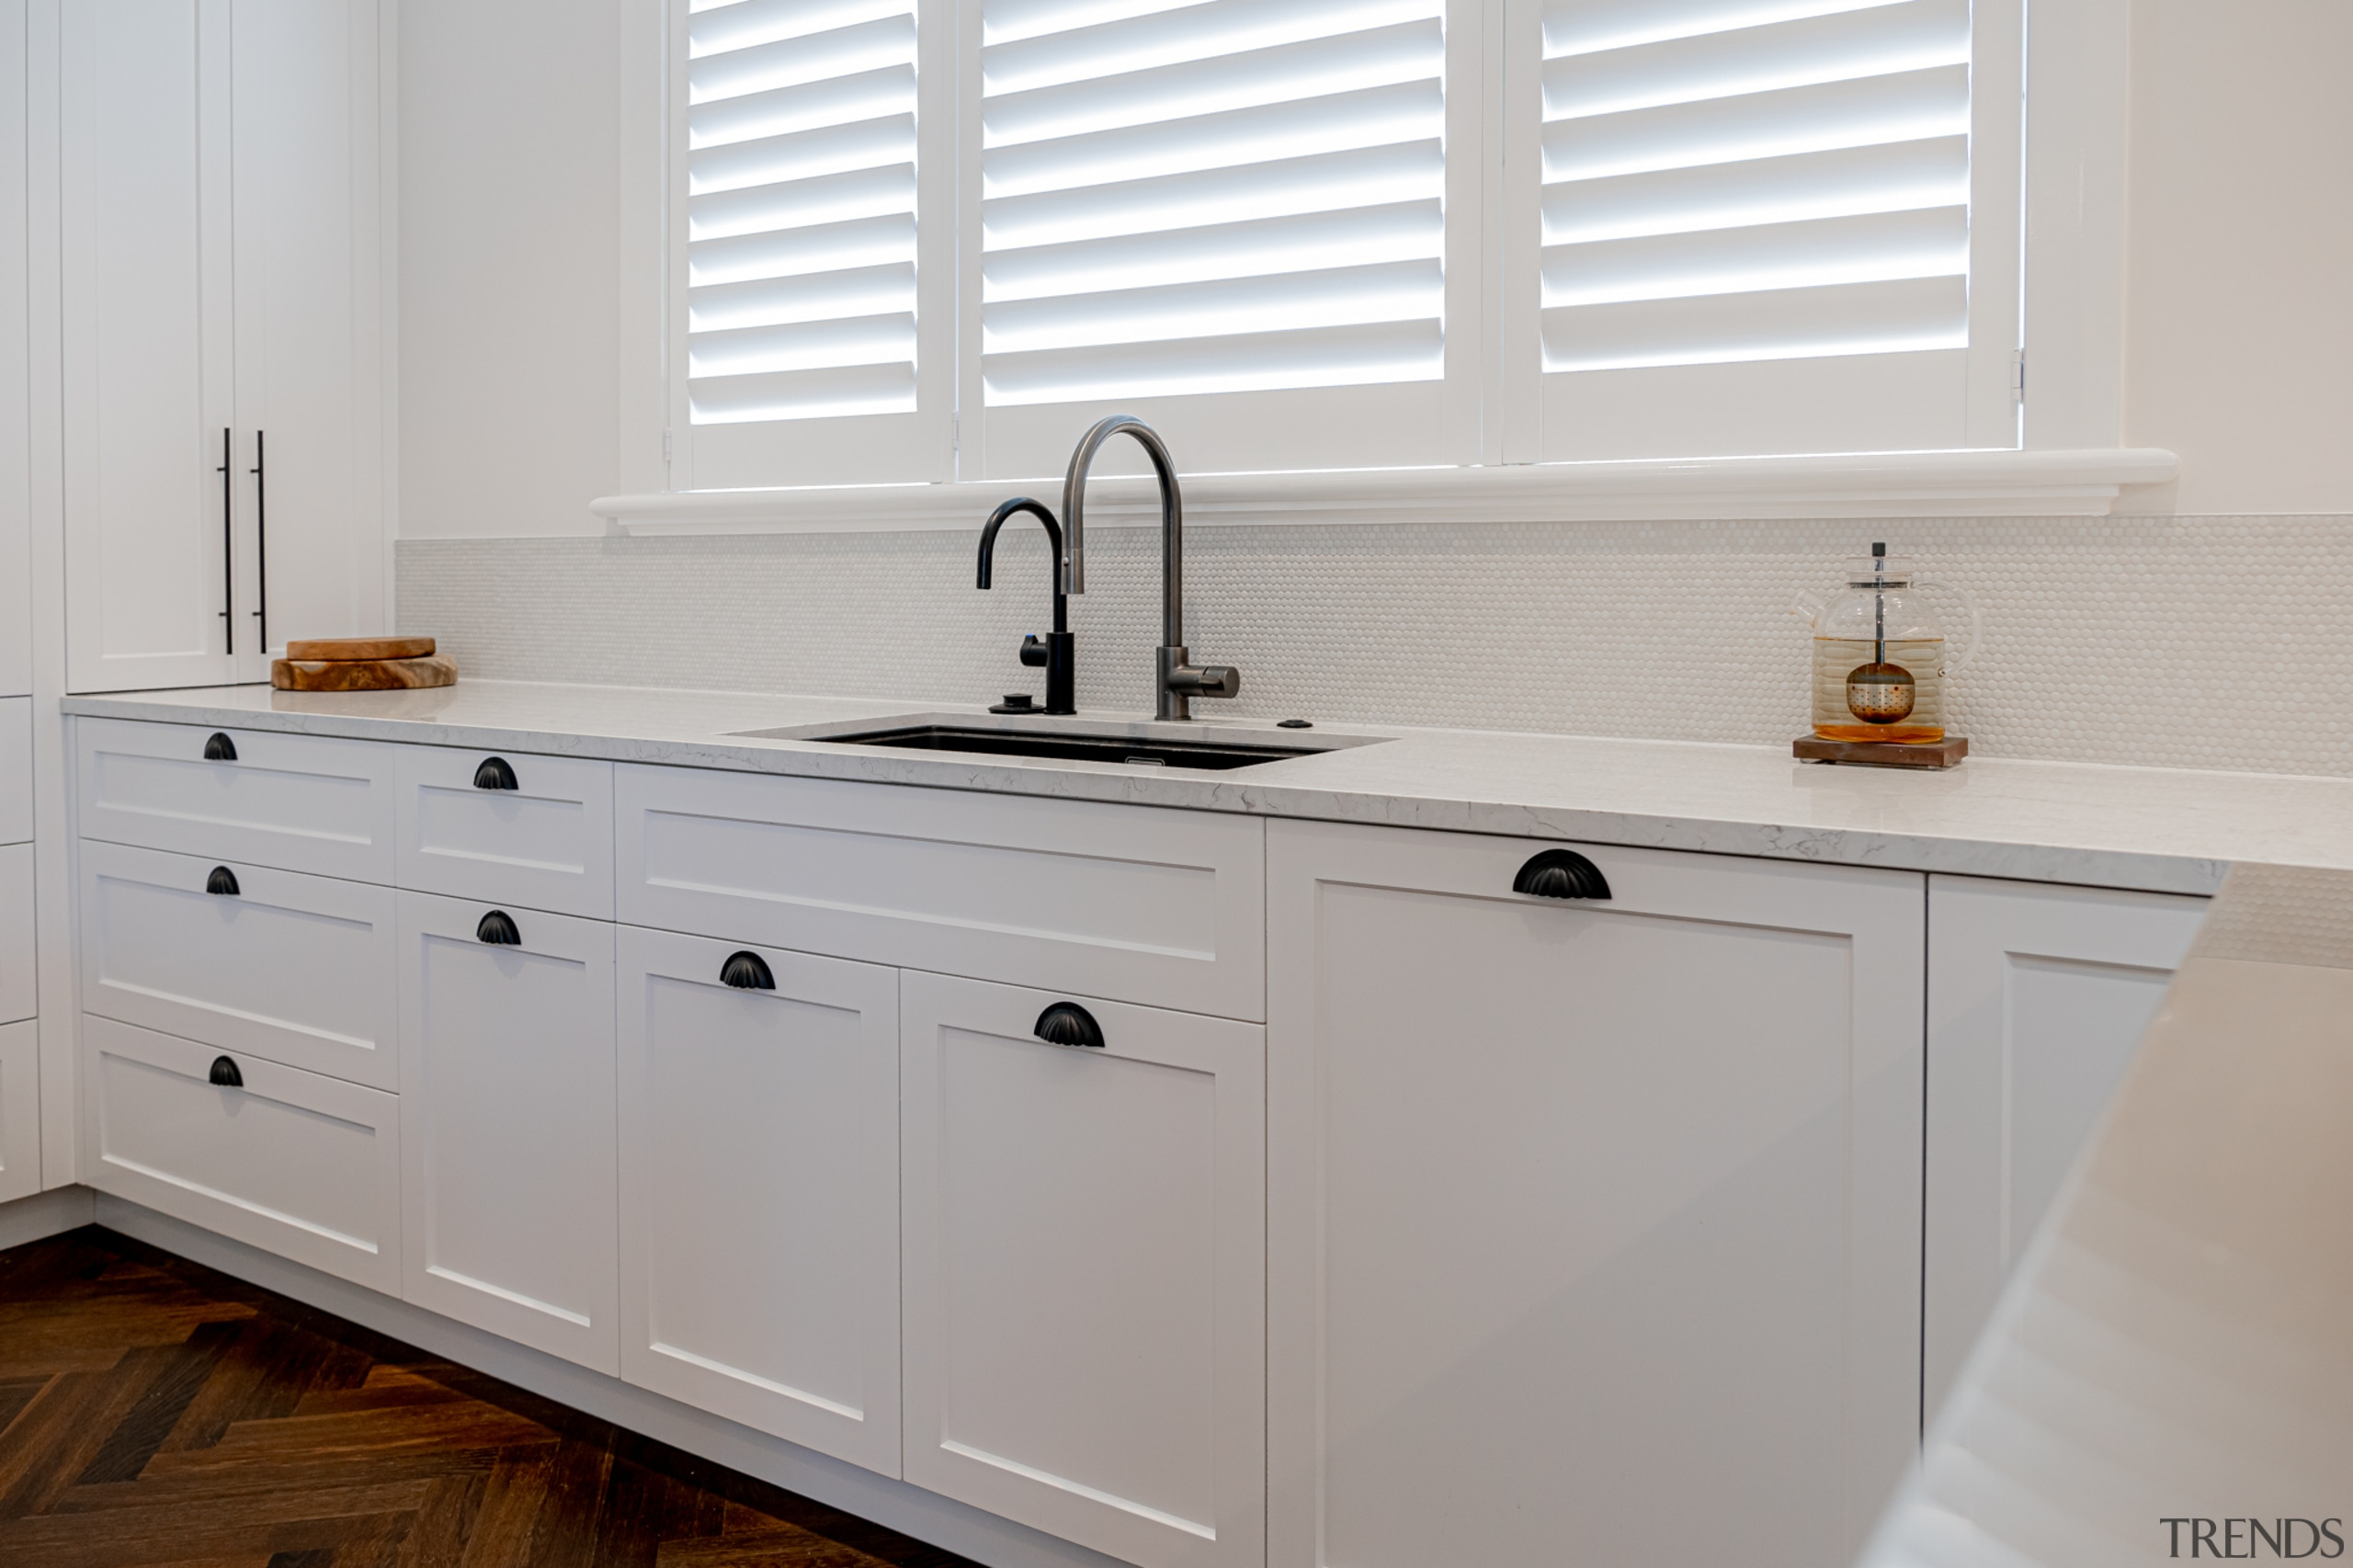 The sun coming through the existing sink windows